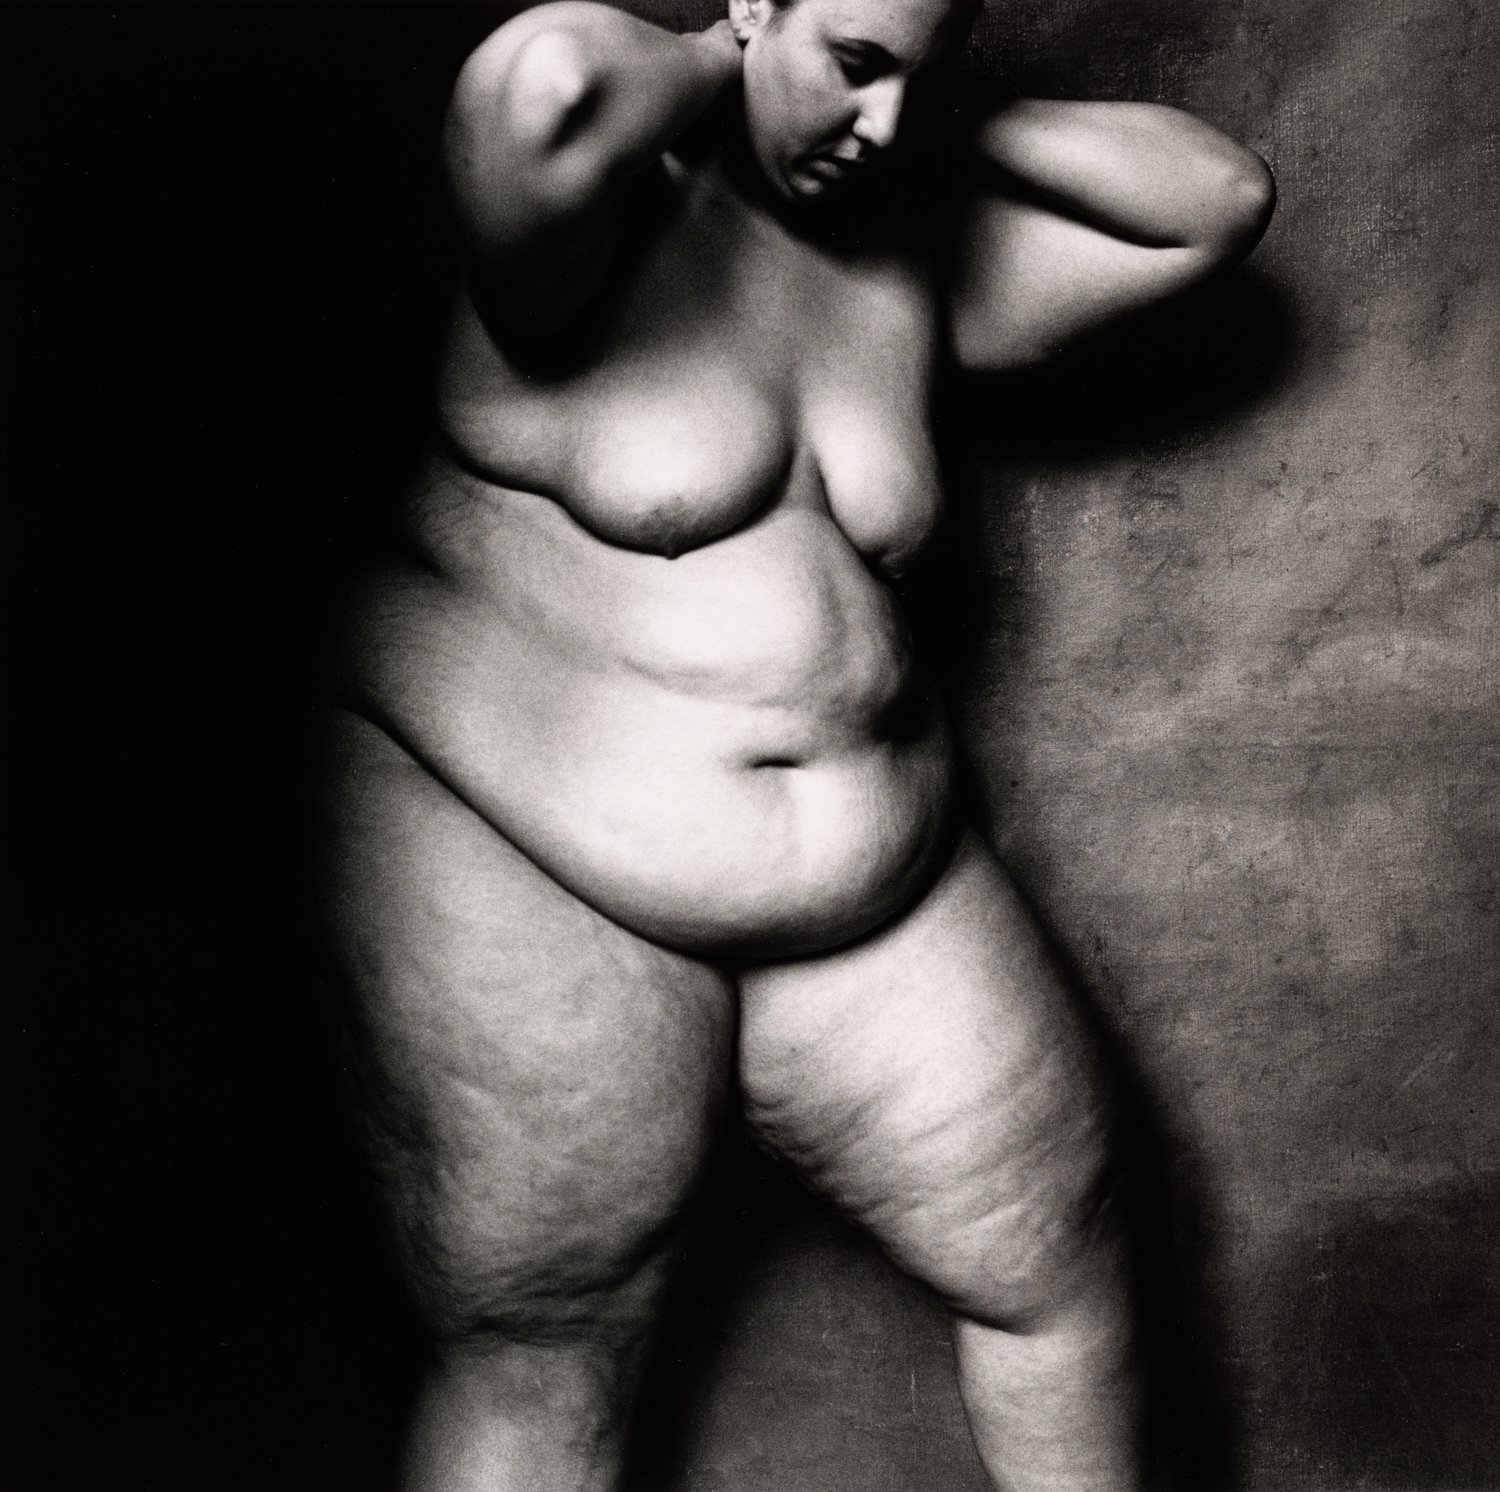 Large Woman Looking Down , New York, 1994 Gelatin silver print © The Irving Penn Foundation